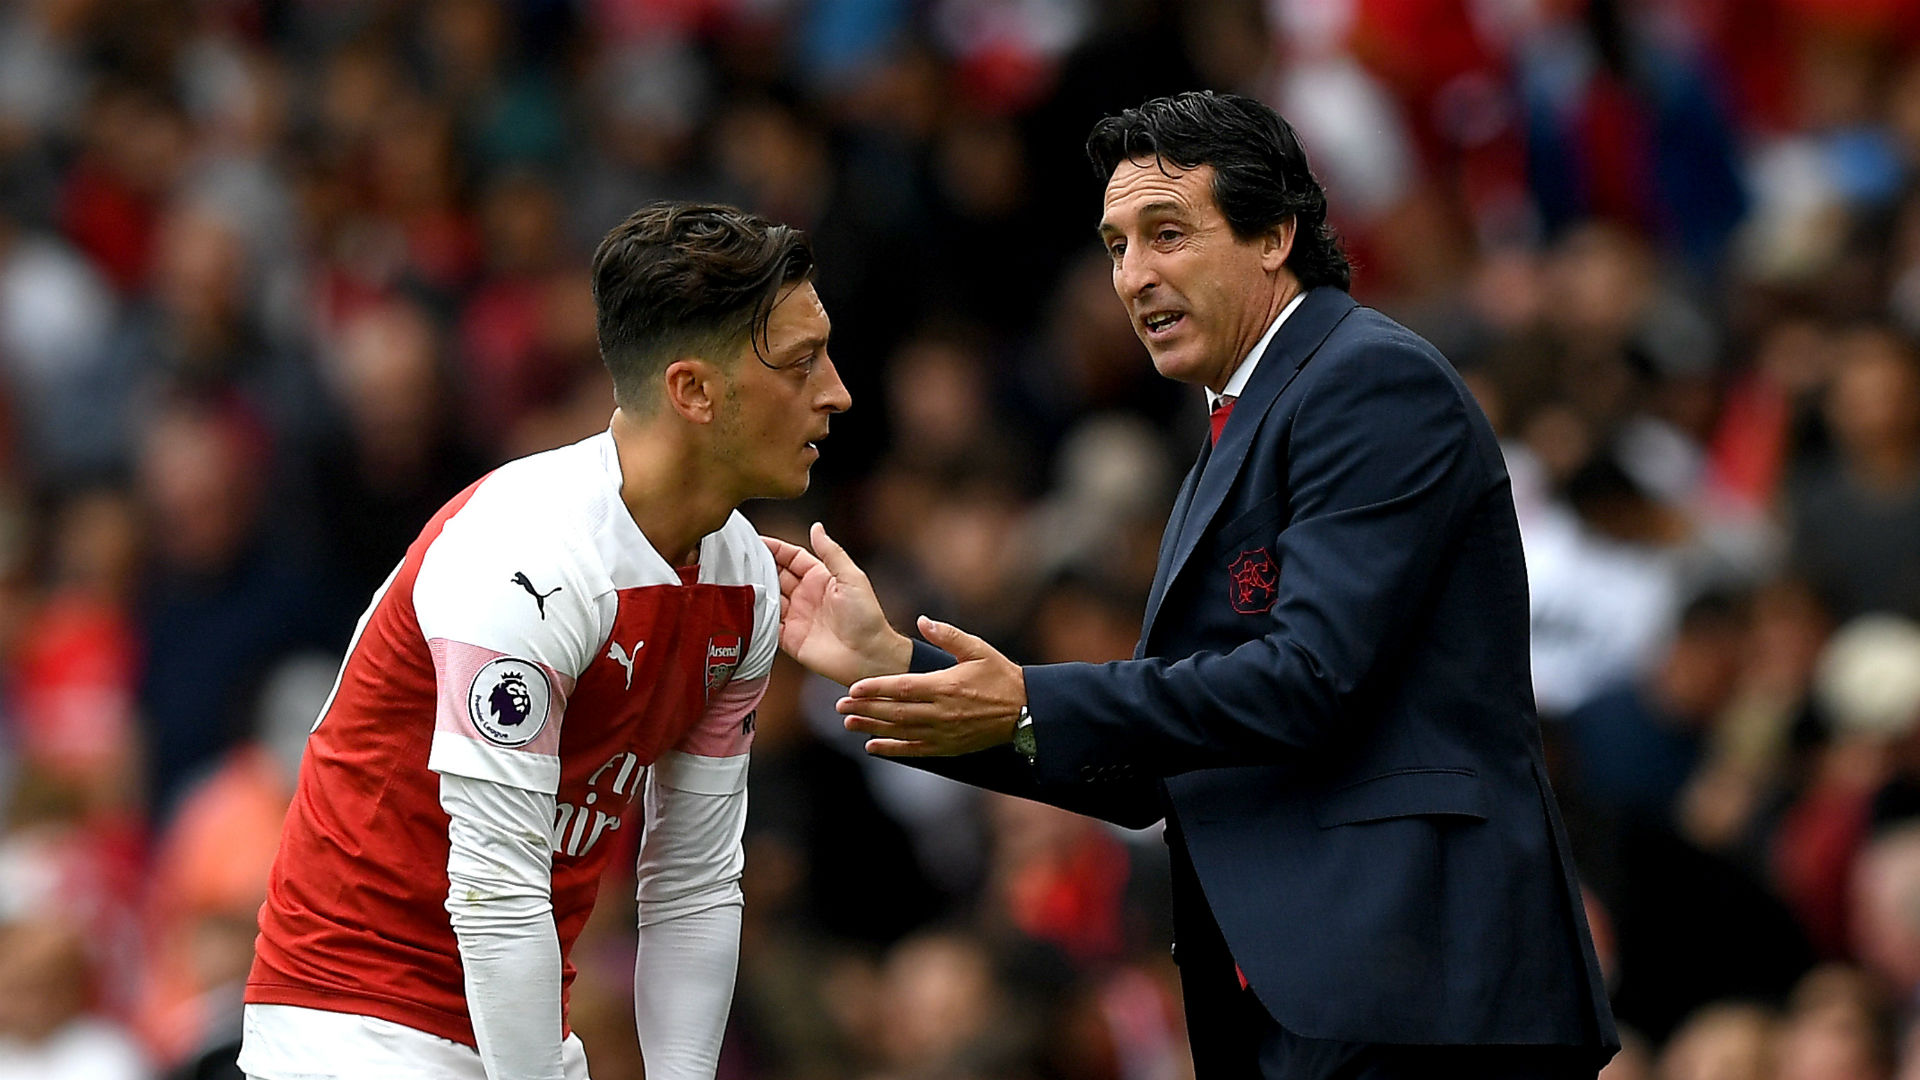 Emery: Ozil lacked qualities for aggressive pressure